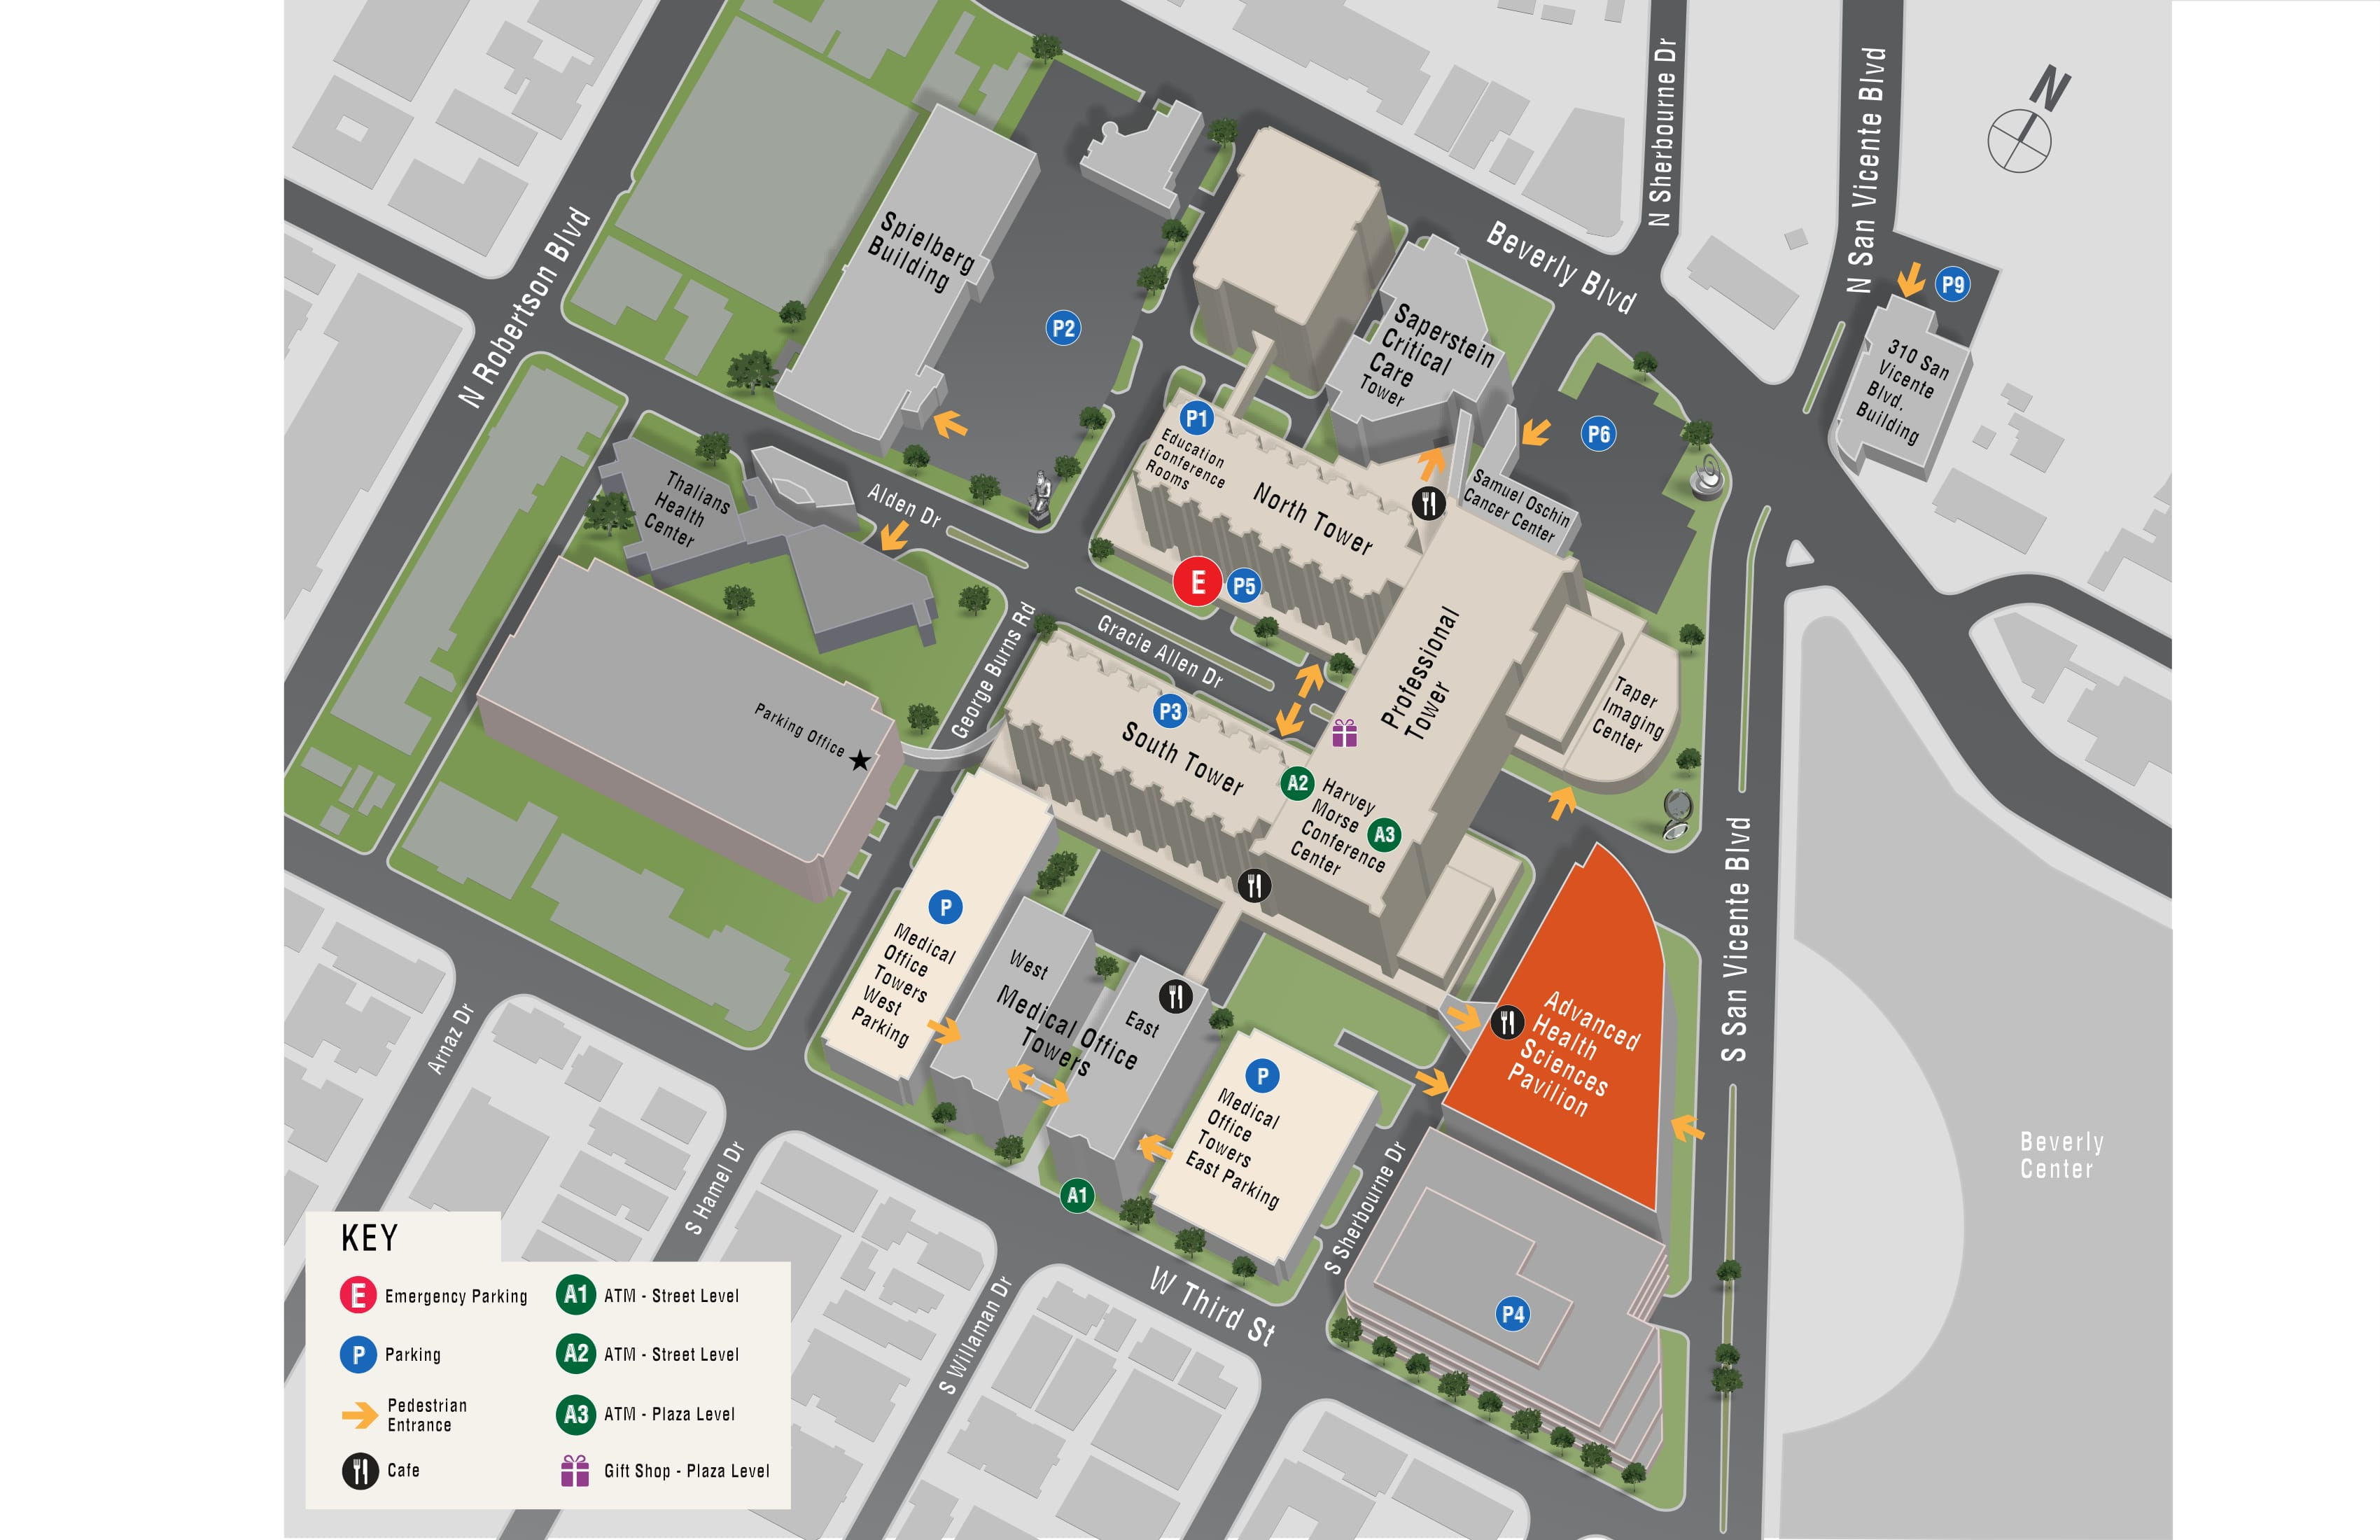 Parking map for Cardiothoracic Surgery at Smidt Heart Institute